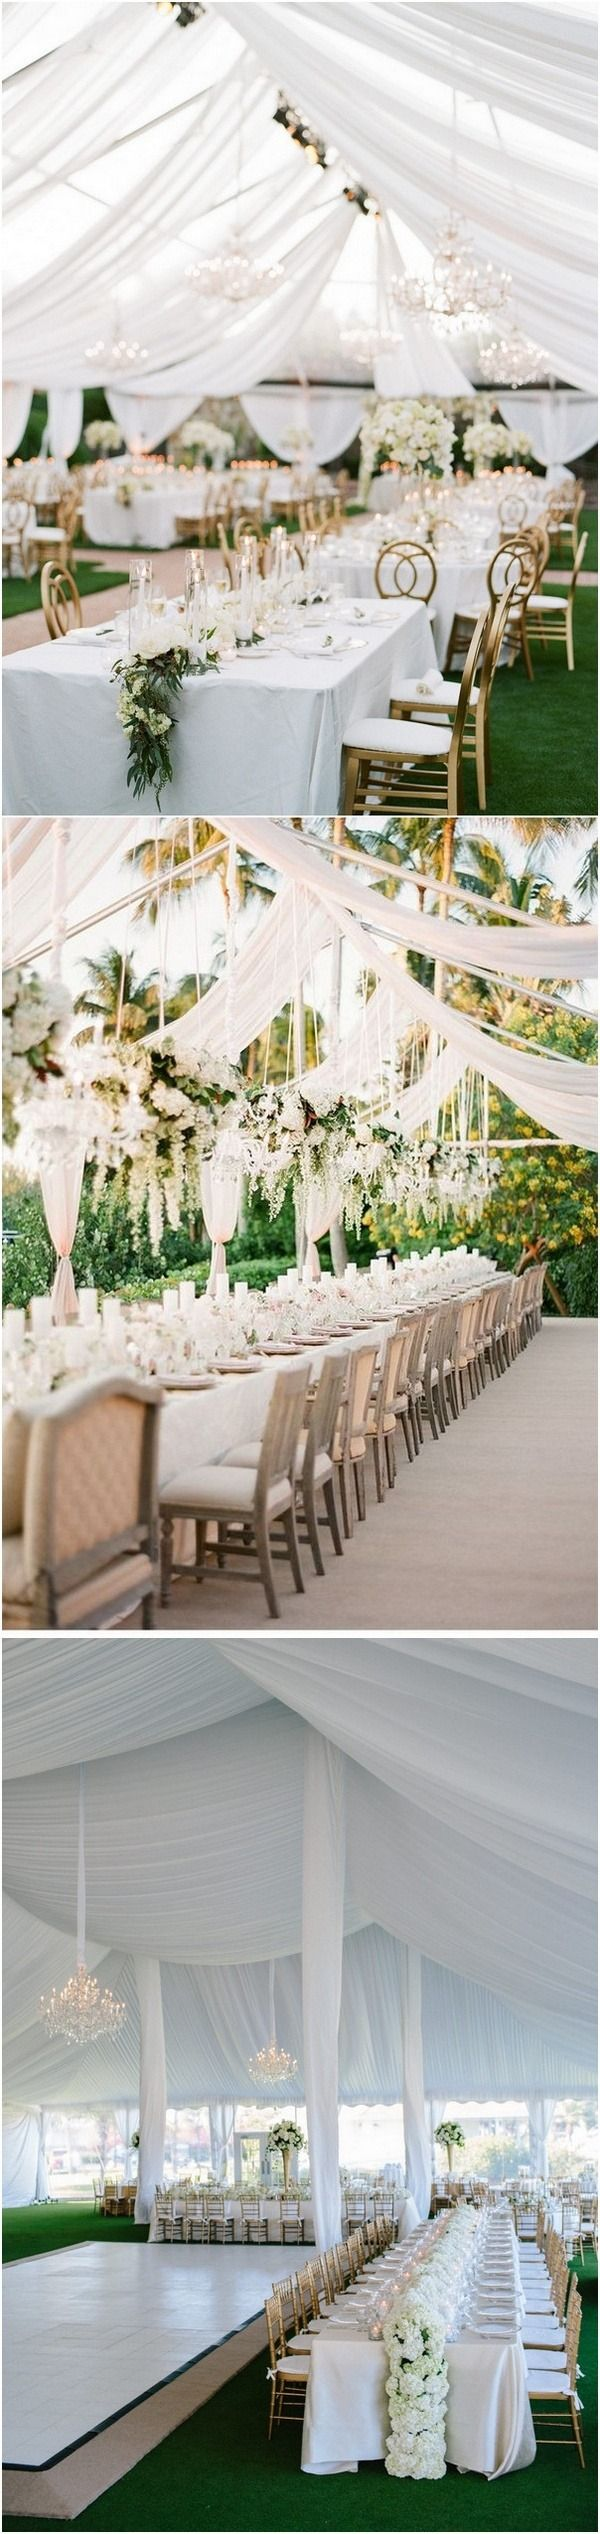 Trending 20 Brilliant Wedding Reception Ideas With Draped Fabric For 2019 Page 2 Of 2 Oh Best Day Ever Tent Wedding Wedding Reception Decorations Wedding Decorations